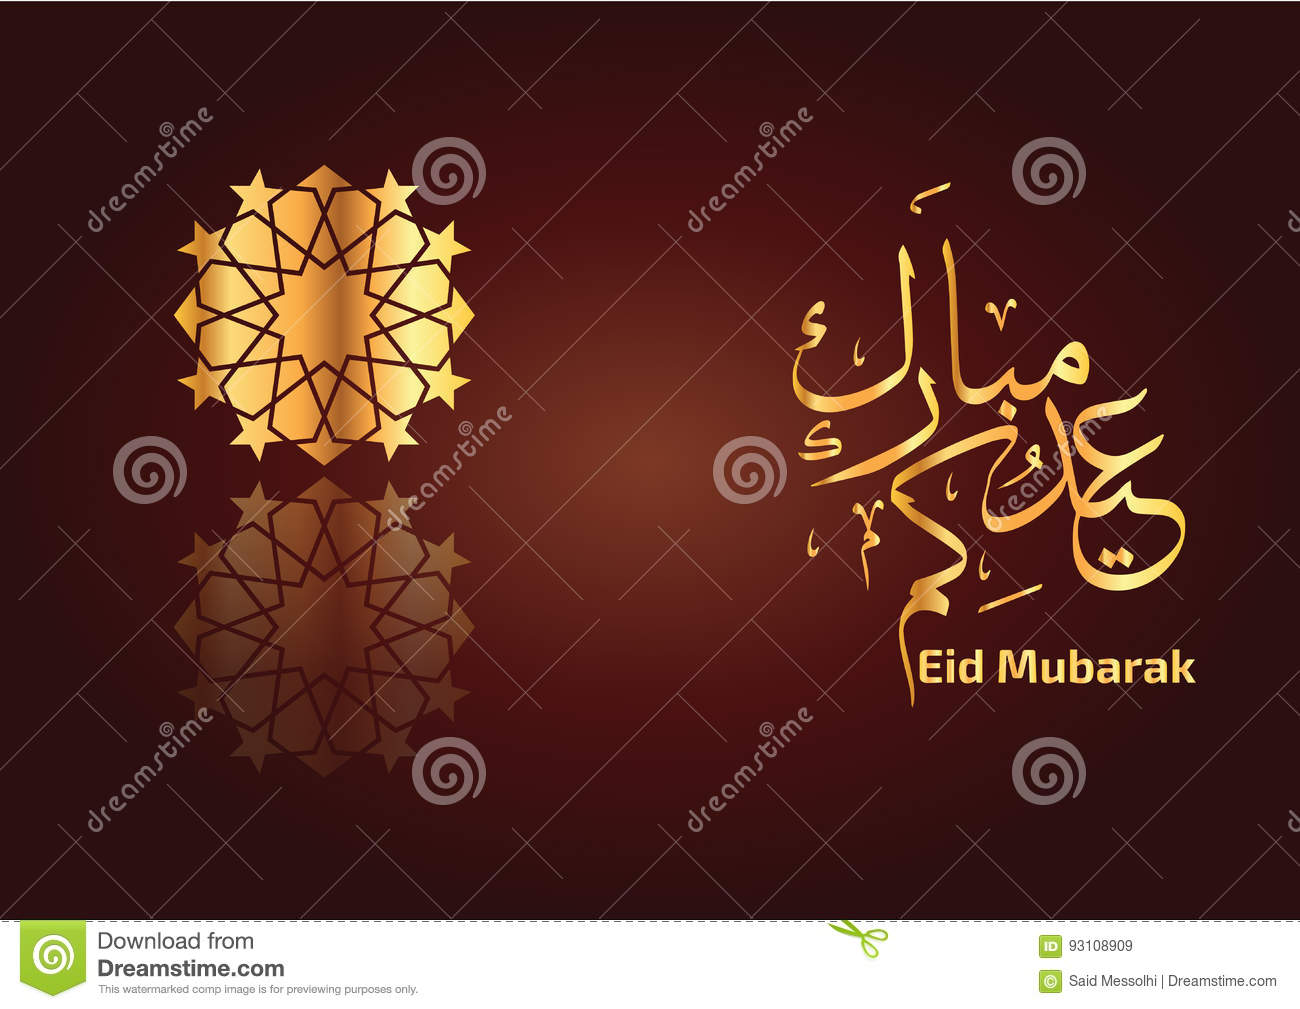 Greeting card for eid al fitr arabic calligraphy translation greeting card for eid al fitr arabic calligraphy translation blessed eid poster muslim kristyandbryce Image collections